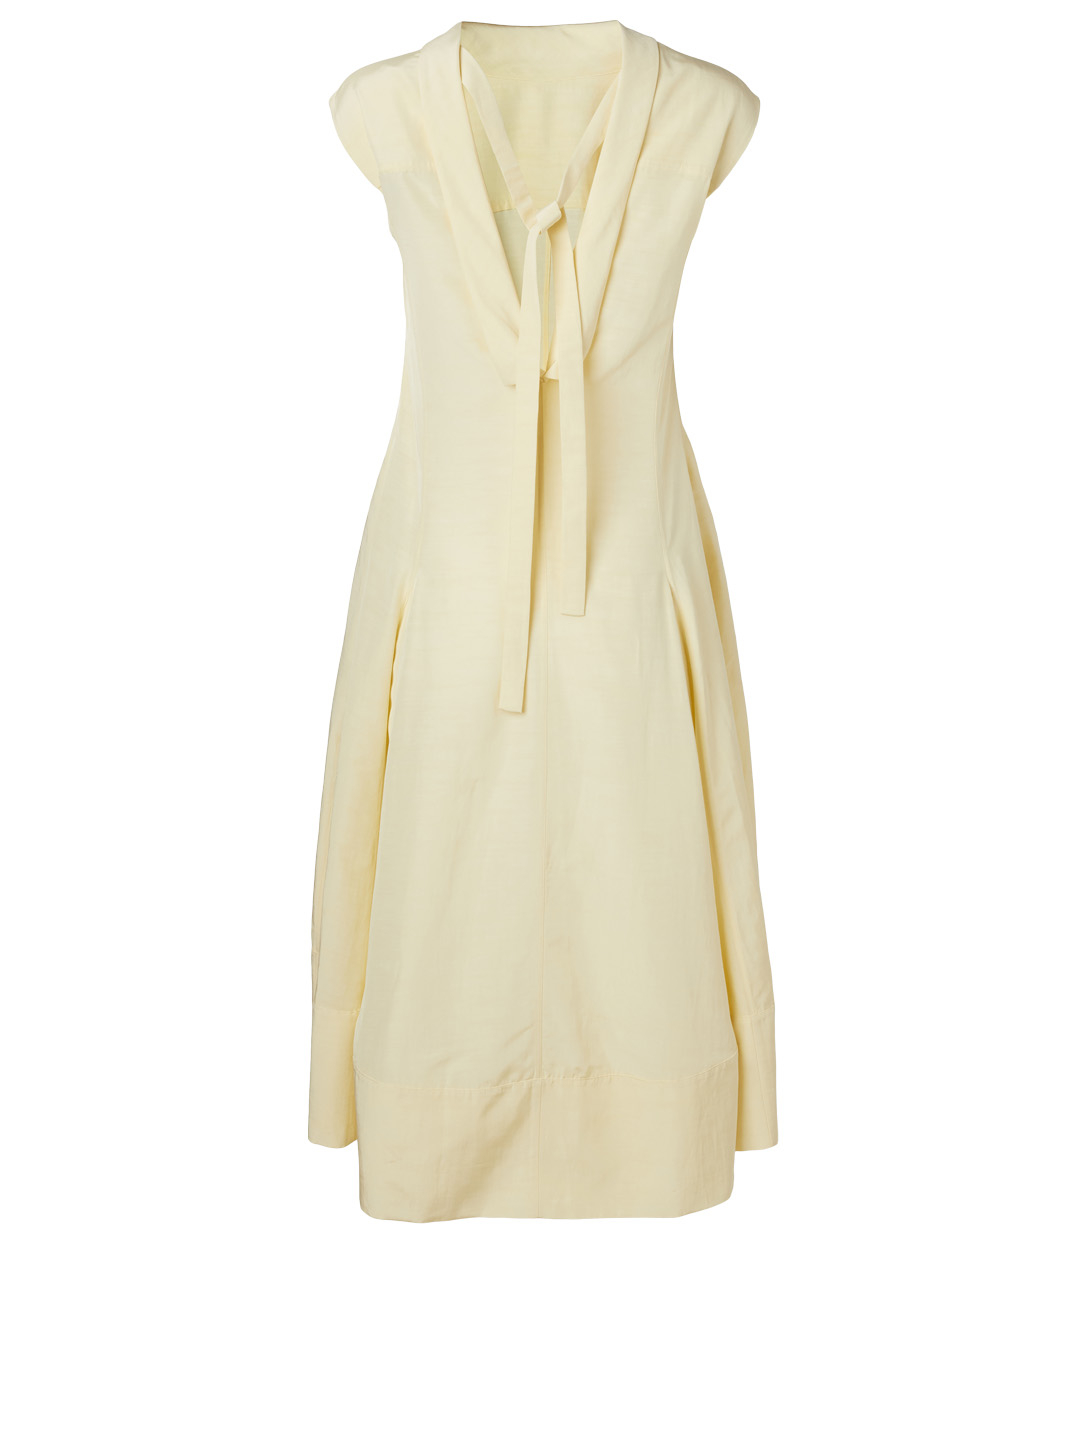 JIL SANDER Linen-Blend Mock Neck Dress Women's Yellow